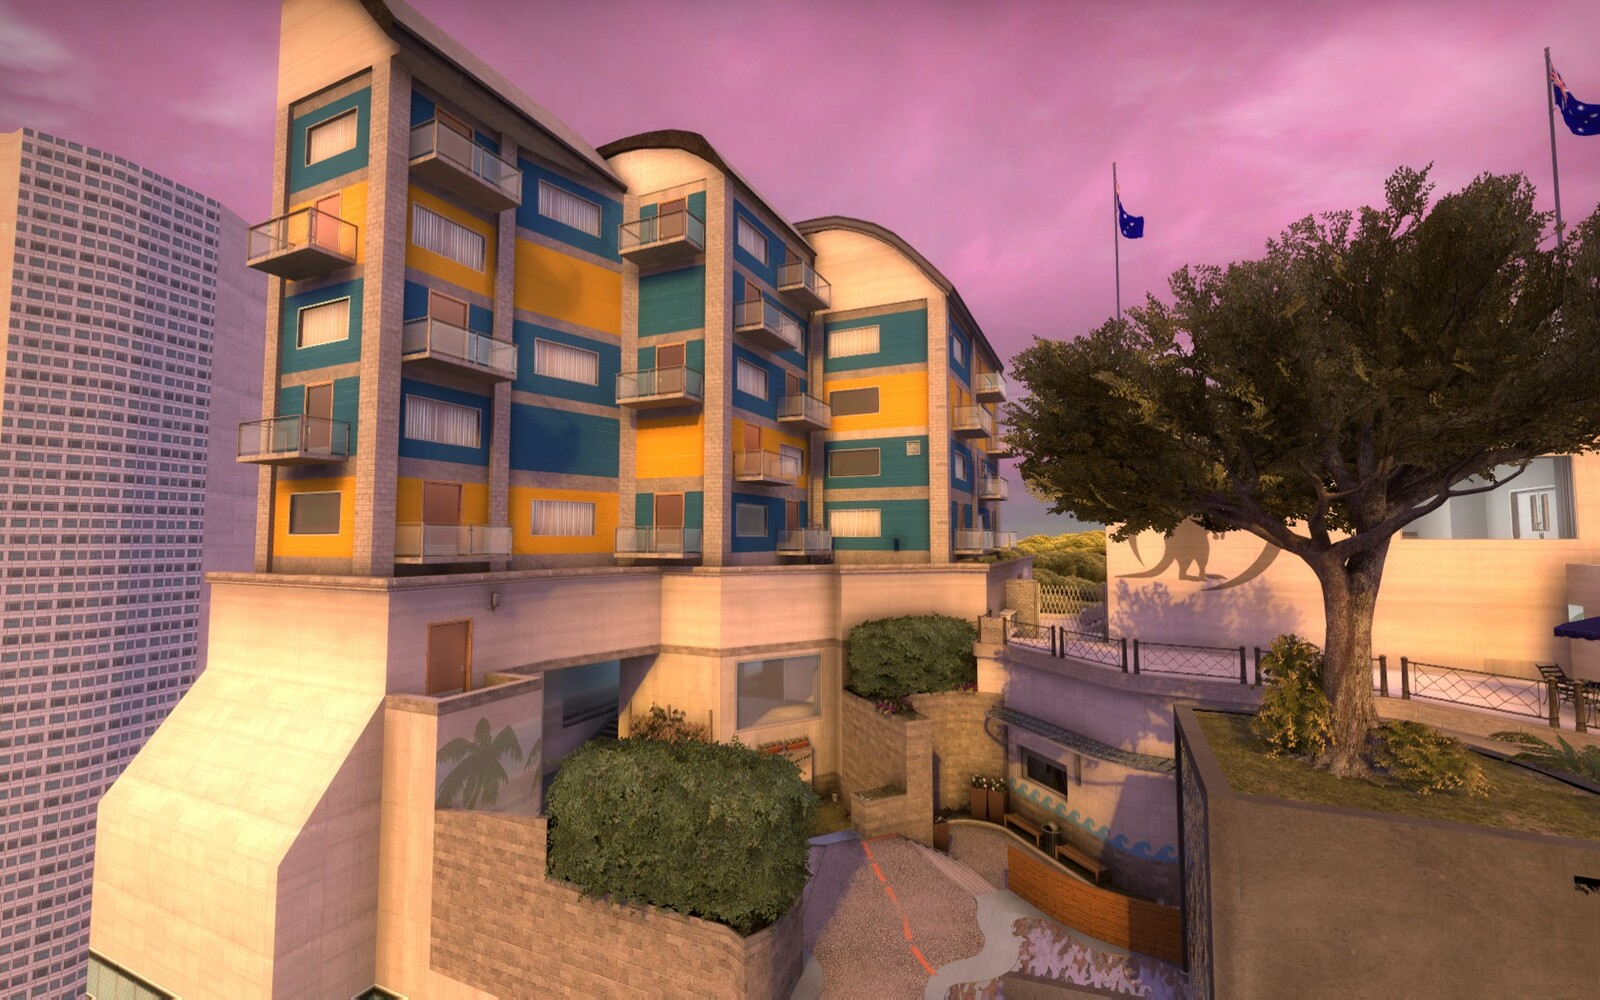 The pent house suit was designed as a focal point to tower above the rest of the map. It can be seen from any of the exterior sections and can help player navigation.